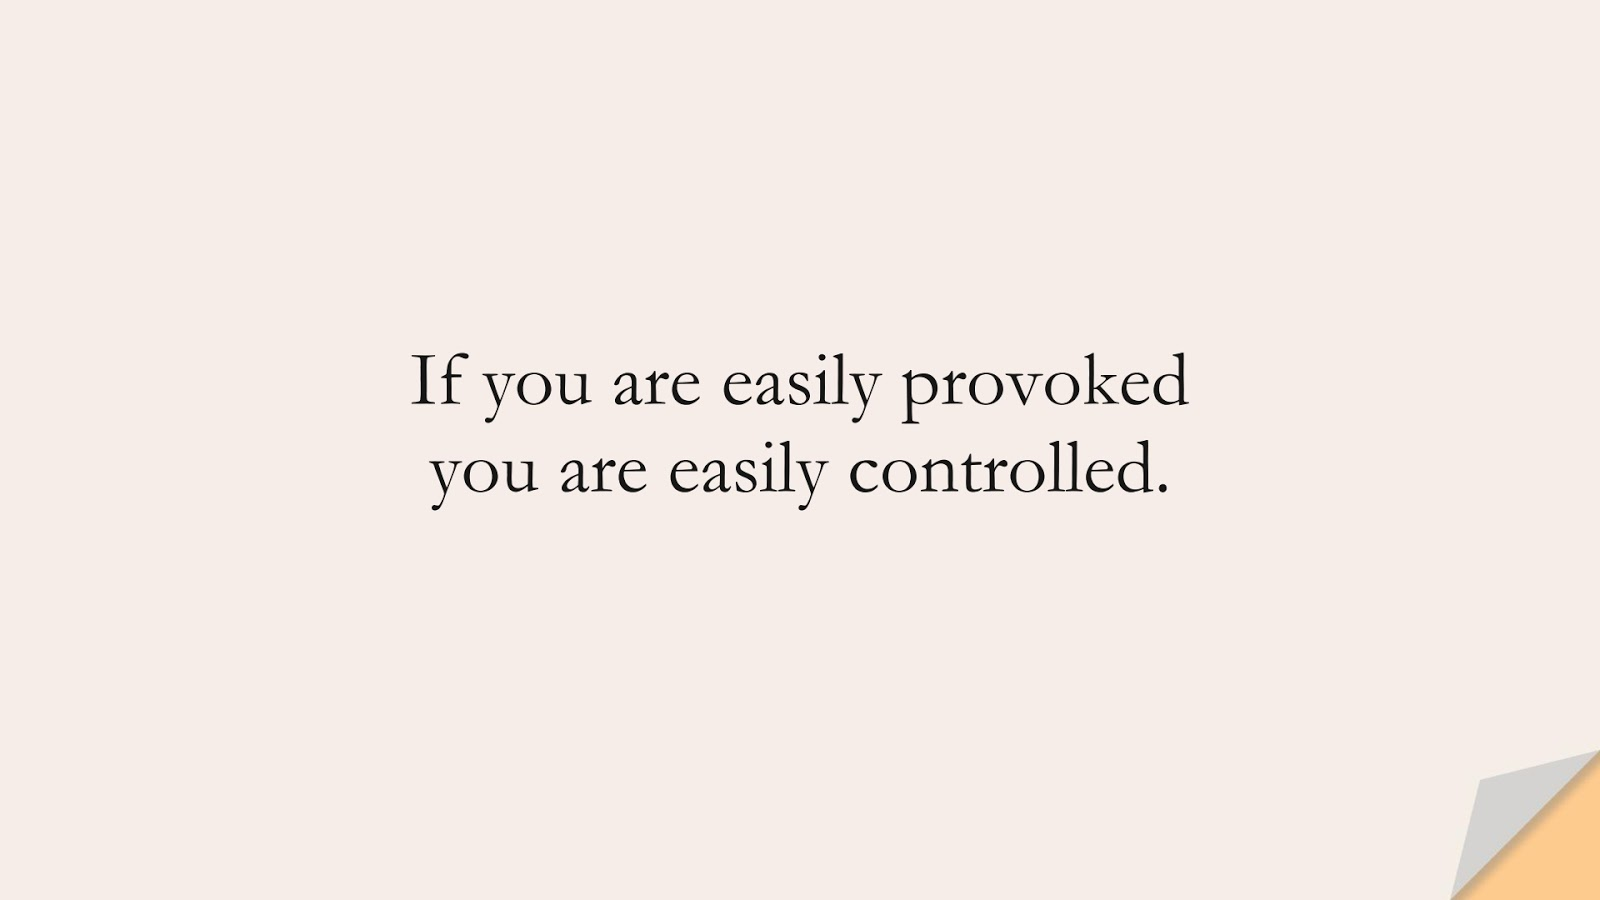 If you are easily provoked you are easily controlled.FALSE